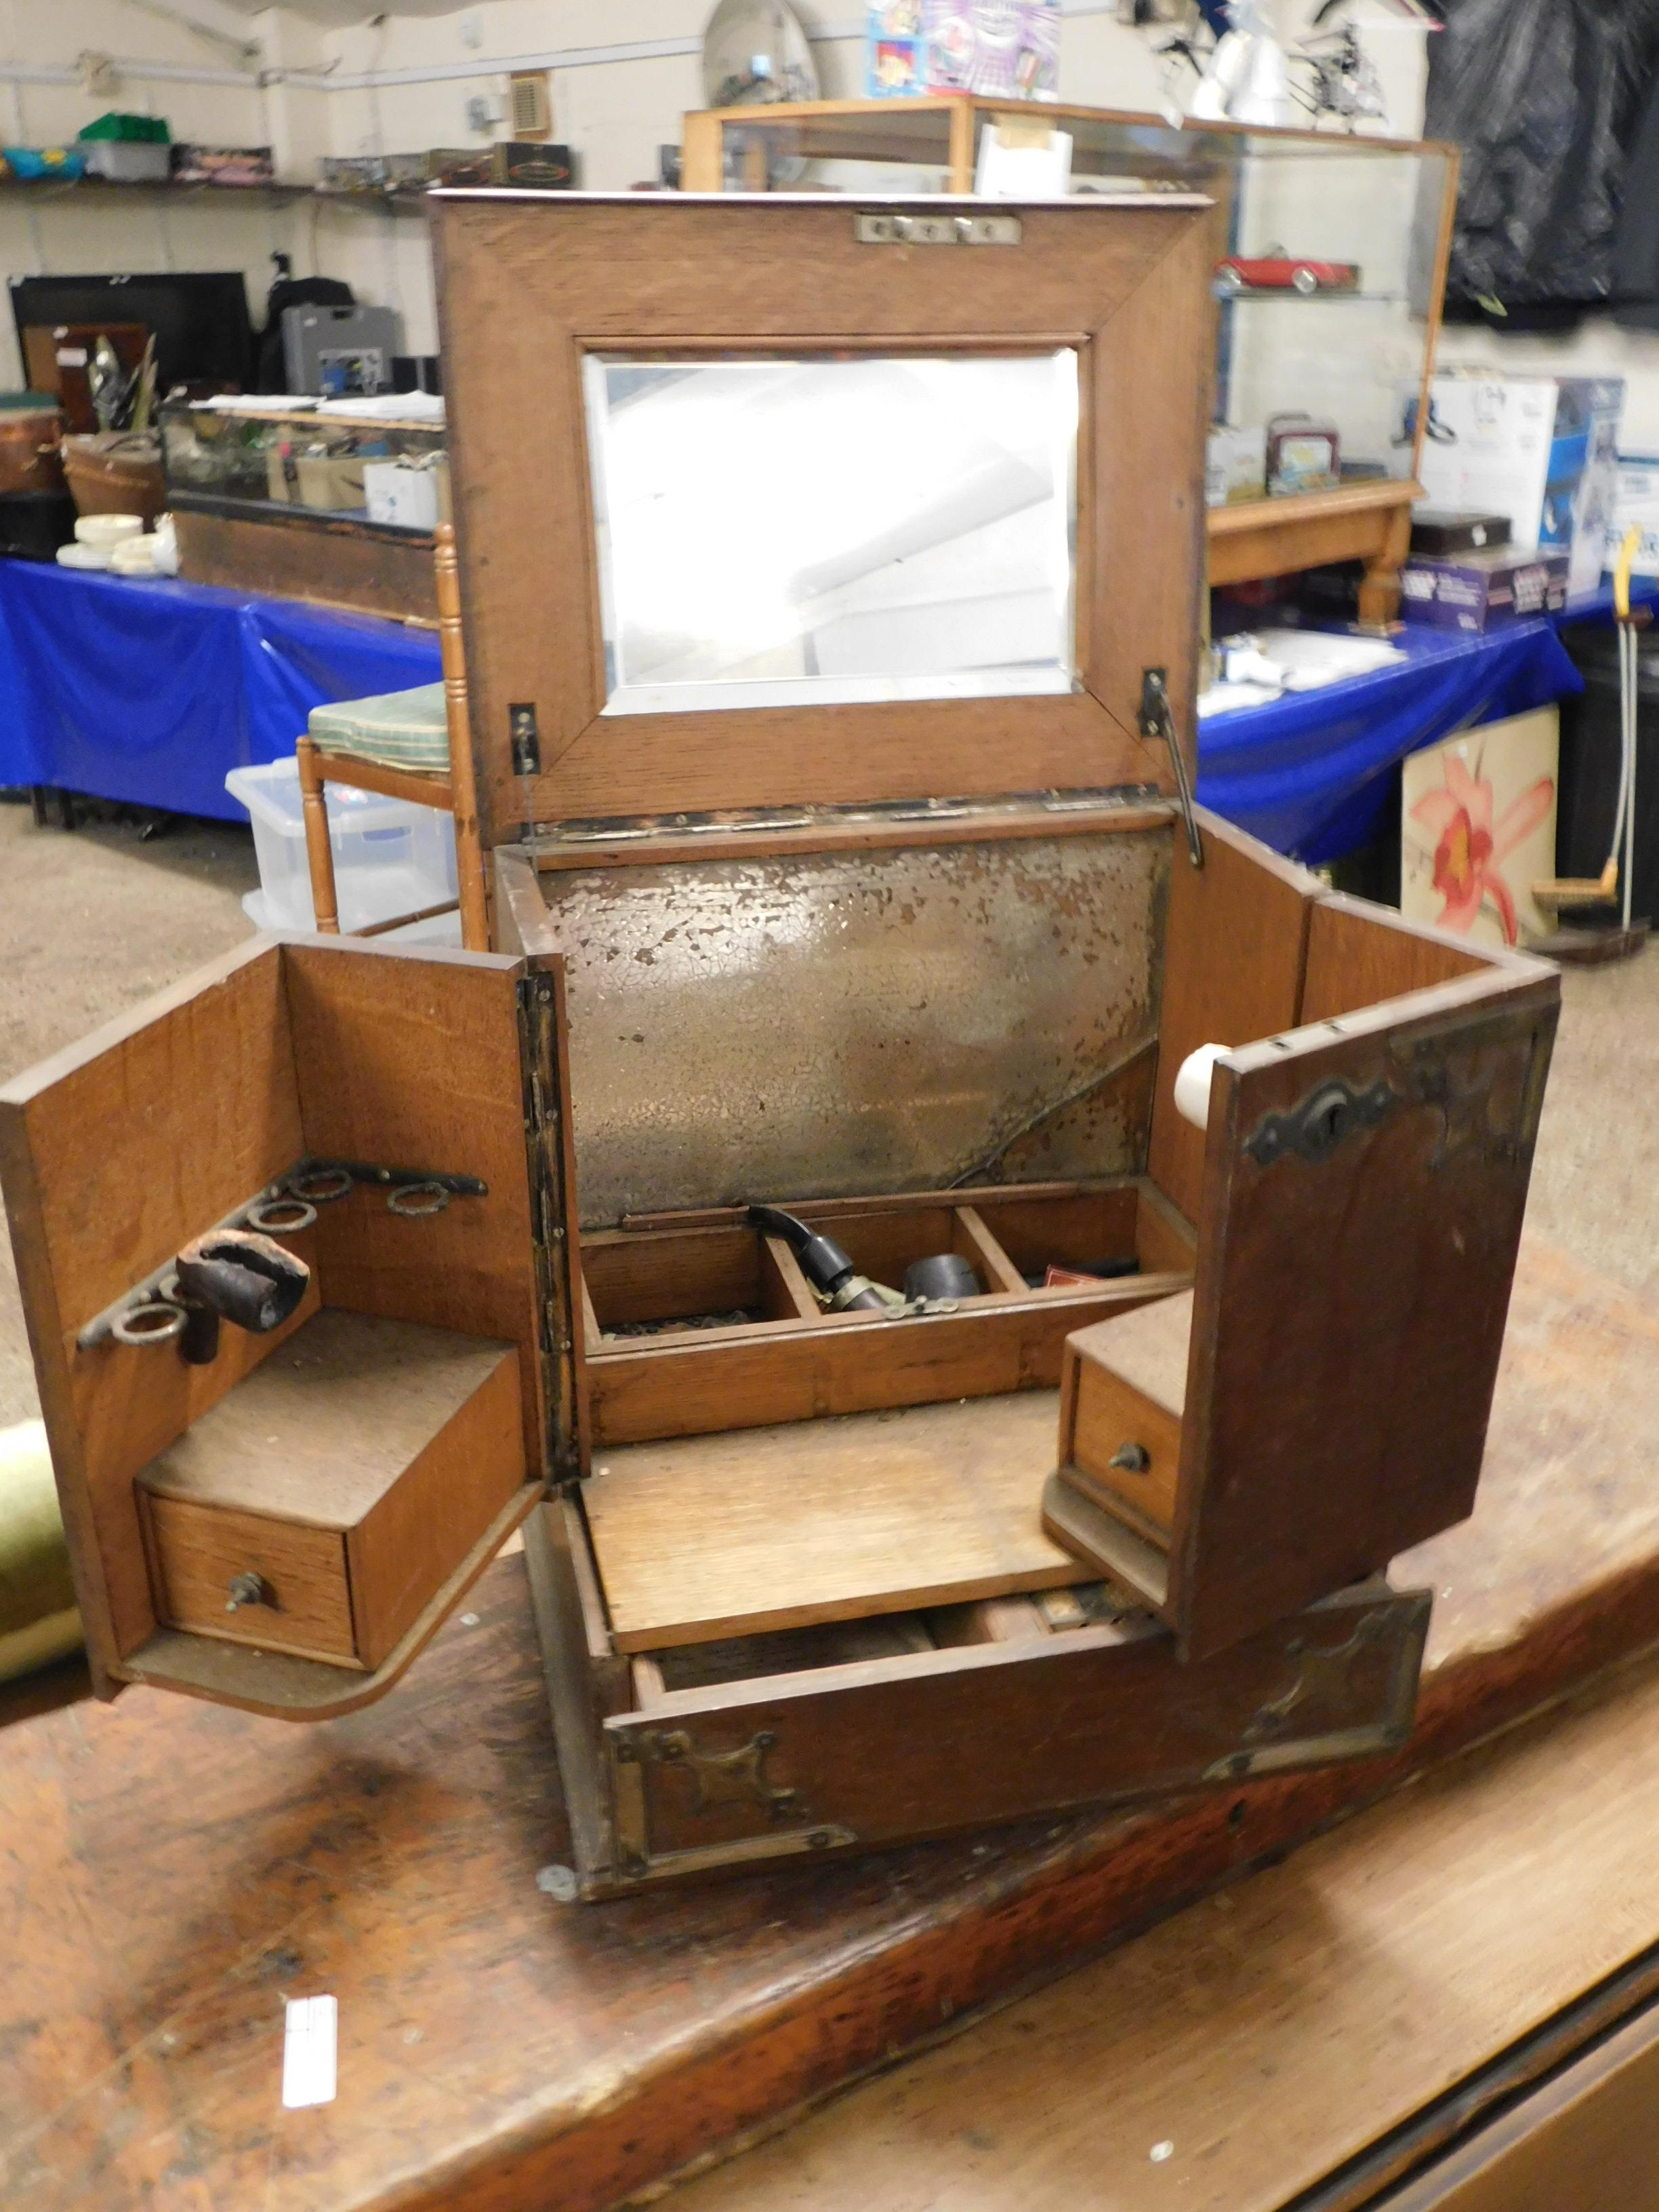 Lot 133 - 19TH CENTURY OAK SMOKER'S COMPENDIUM WITH LIFT UP TOP WITH INSET MIRROR AND OPENING COMPARTMENTS AND